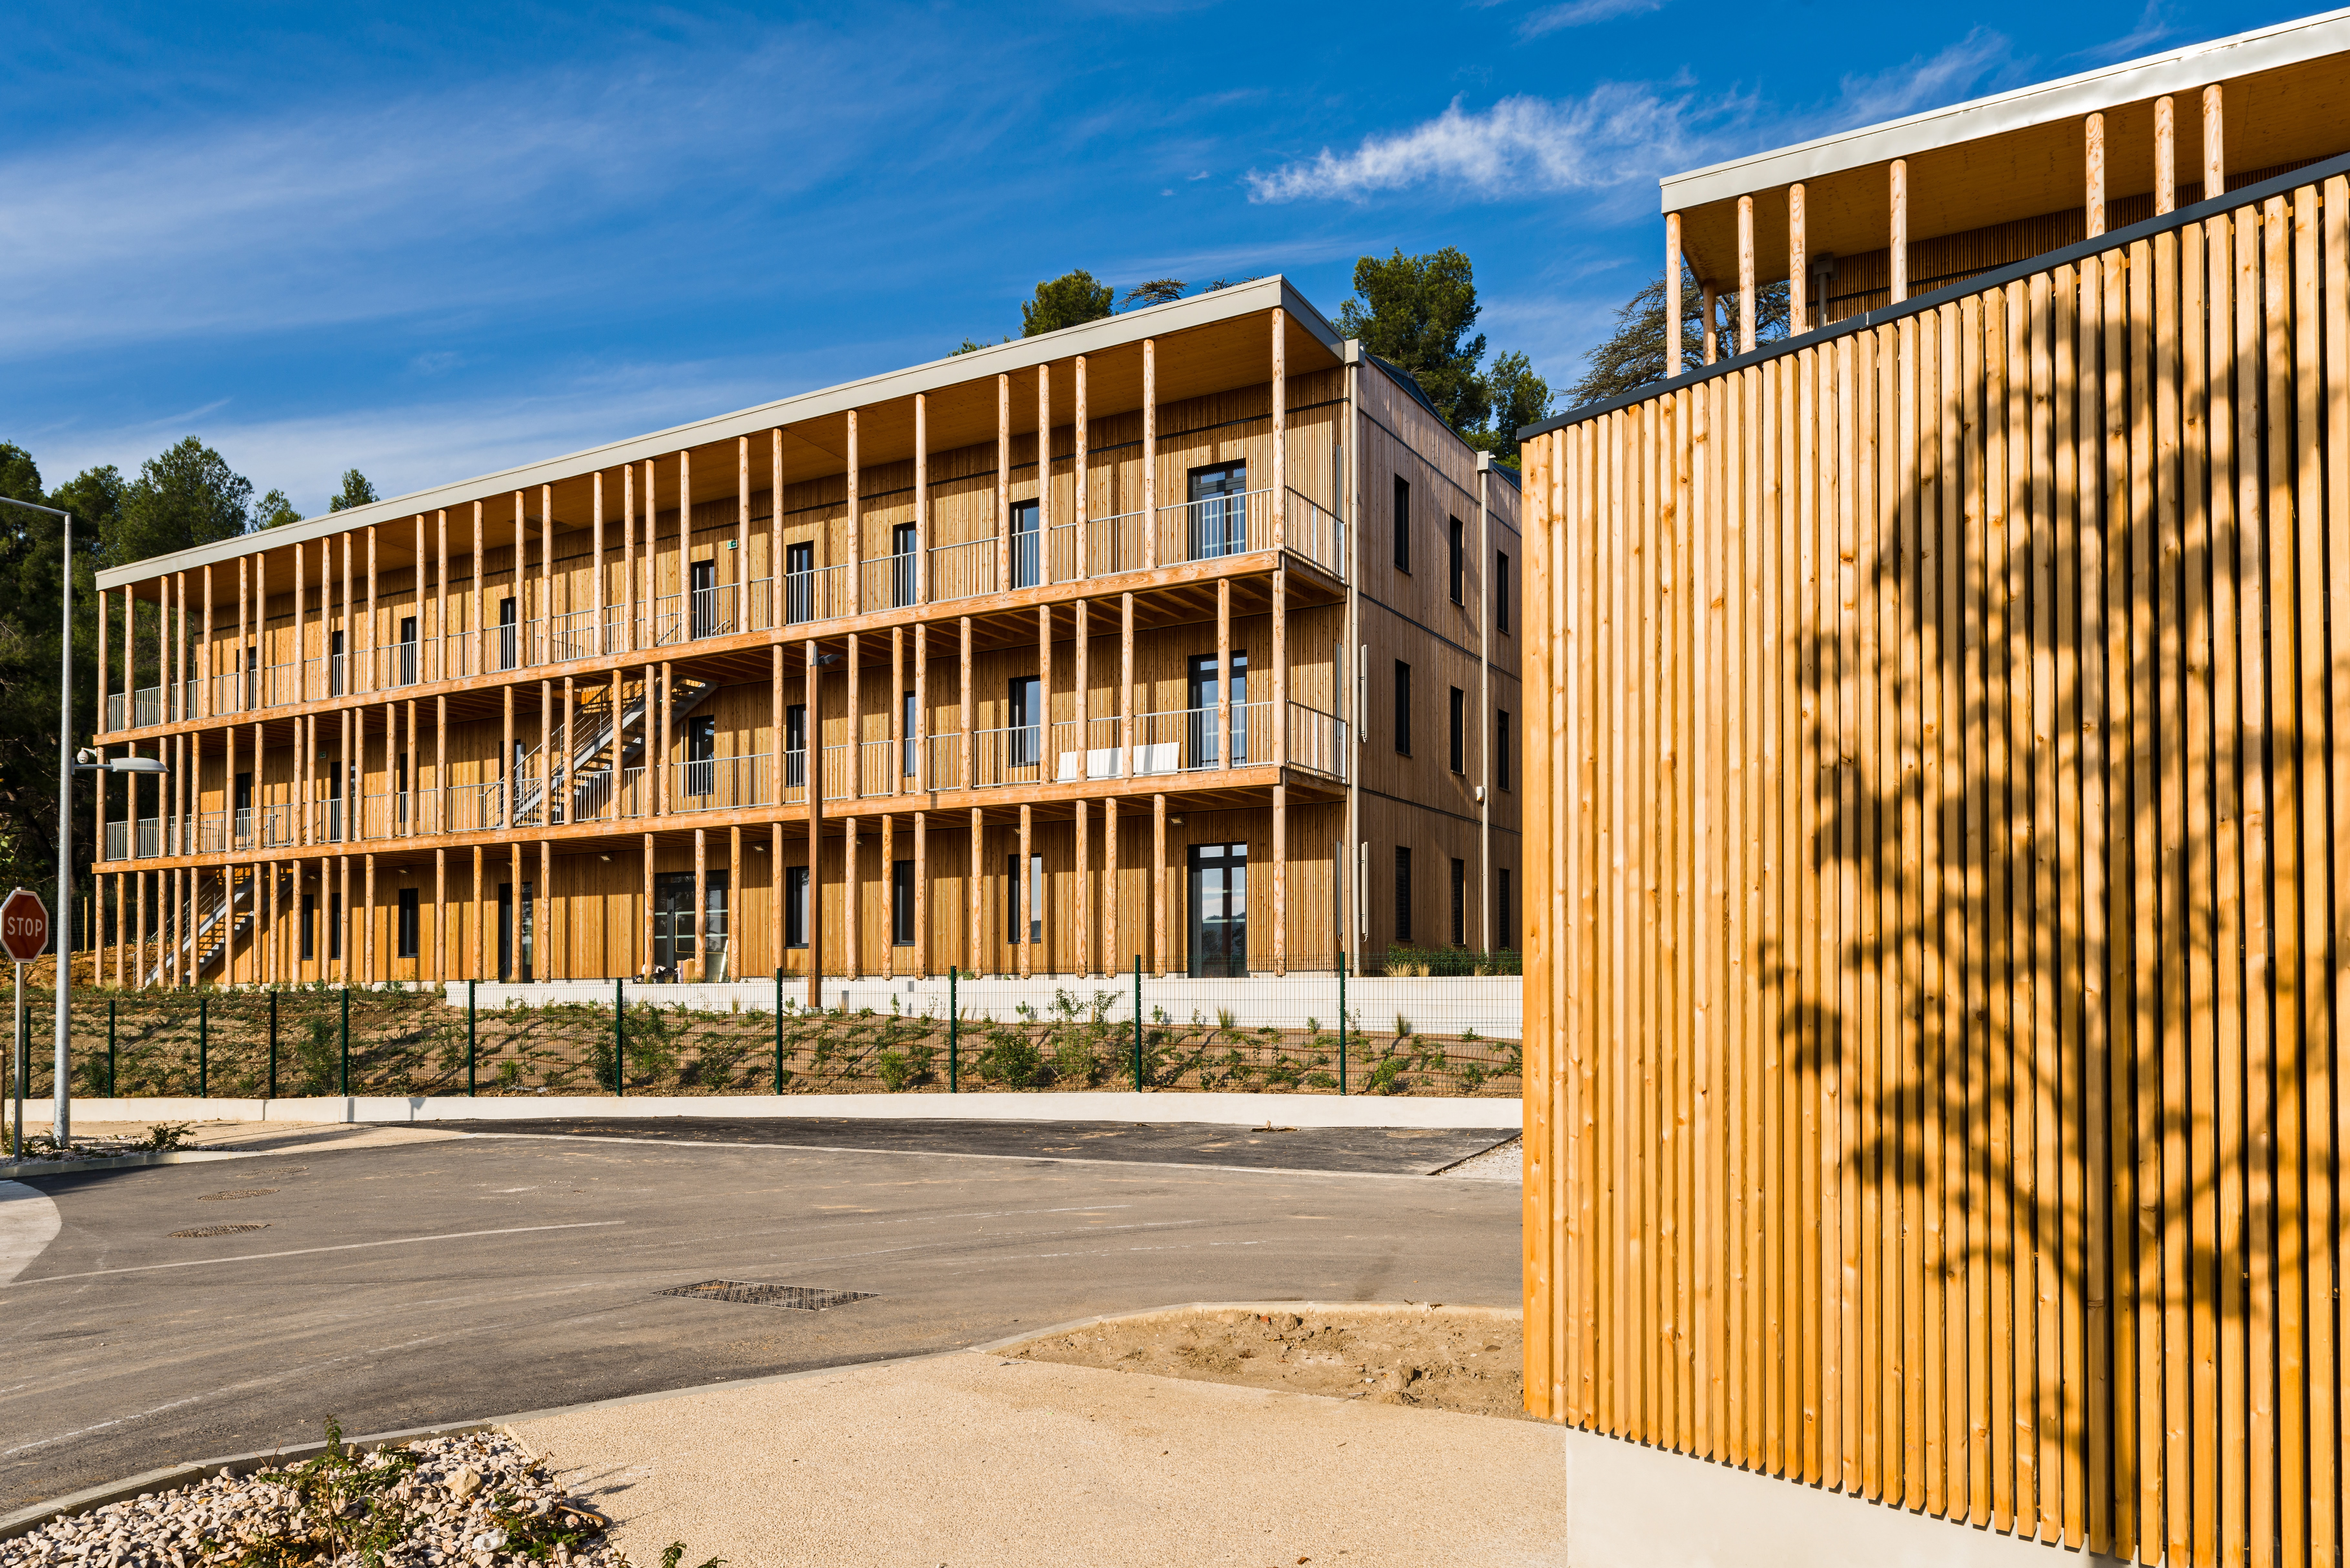 Ywood l 39 ensoleill e aix en provence 13 nexity for Architecte batiment de france